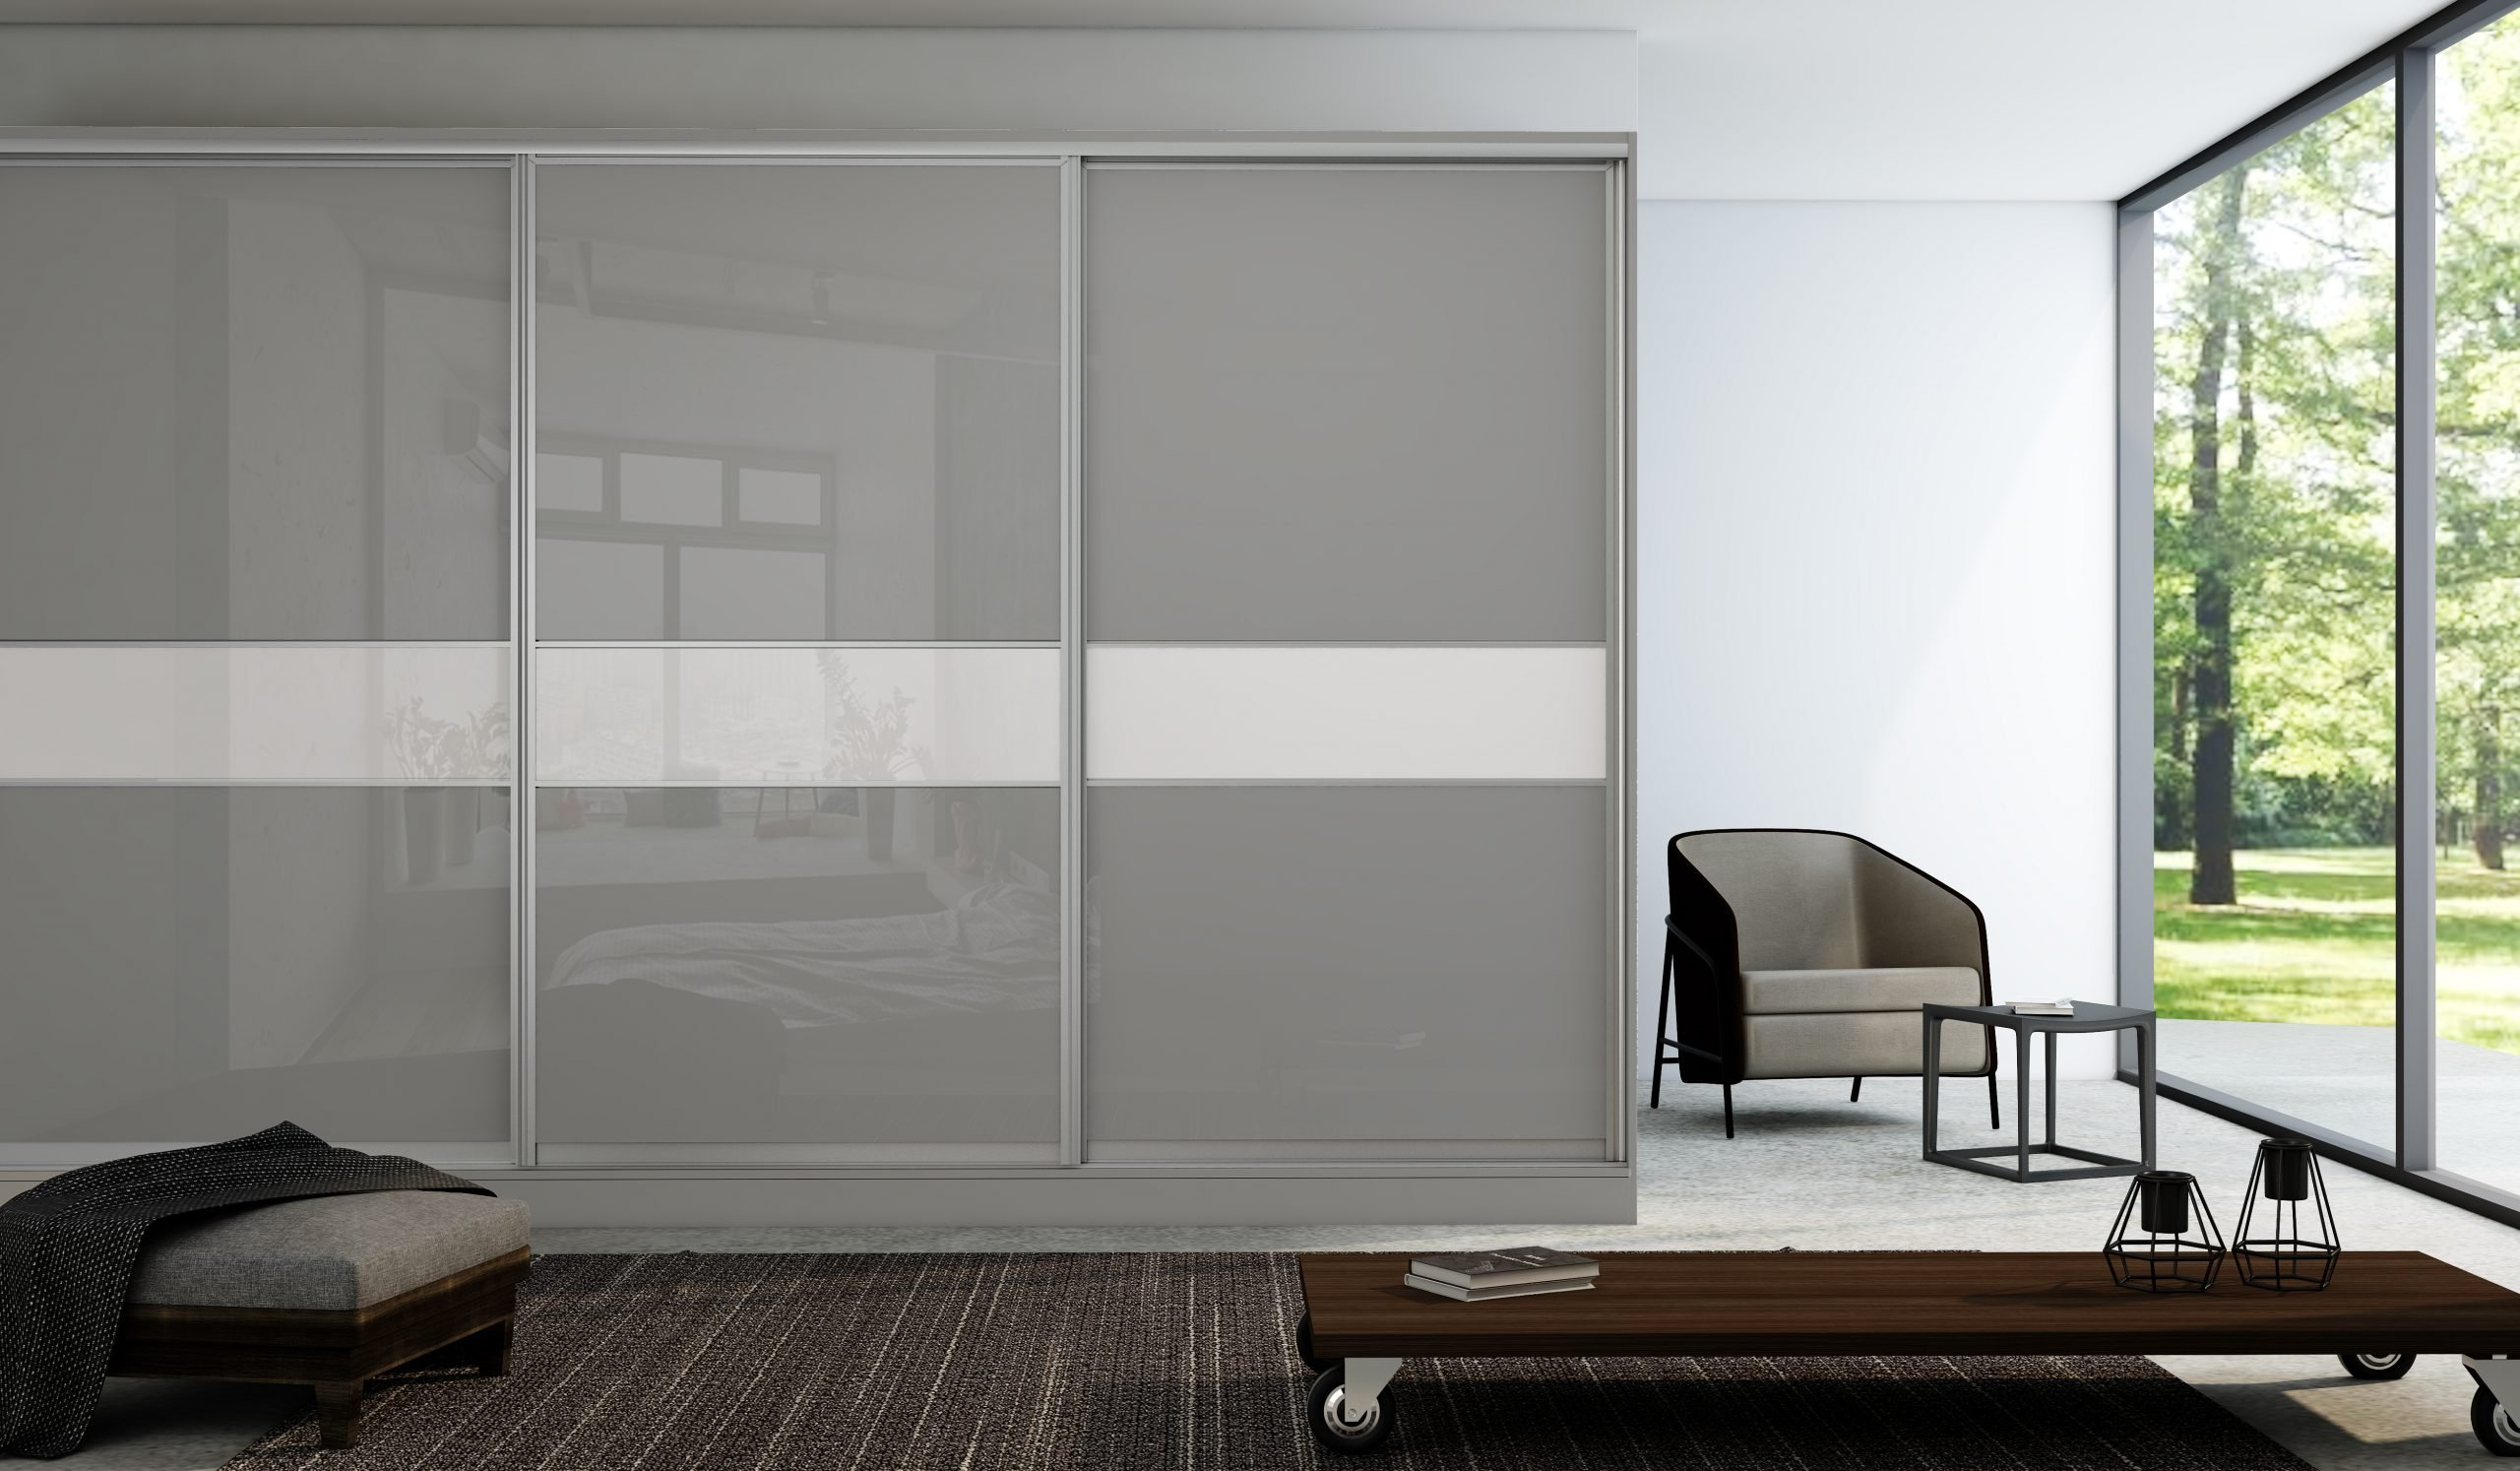 Built-in Sliding Framed Fitted Wardrobe in Combination of Grey Gloss and Snow white finish